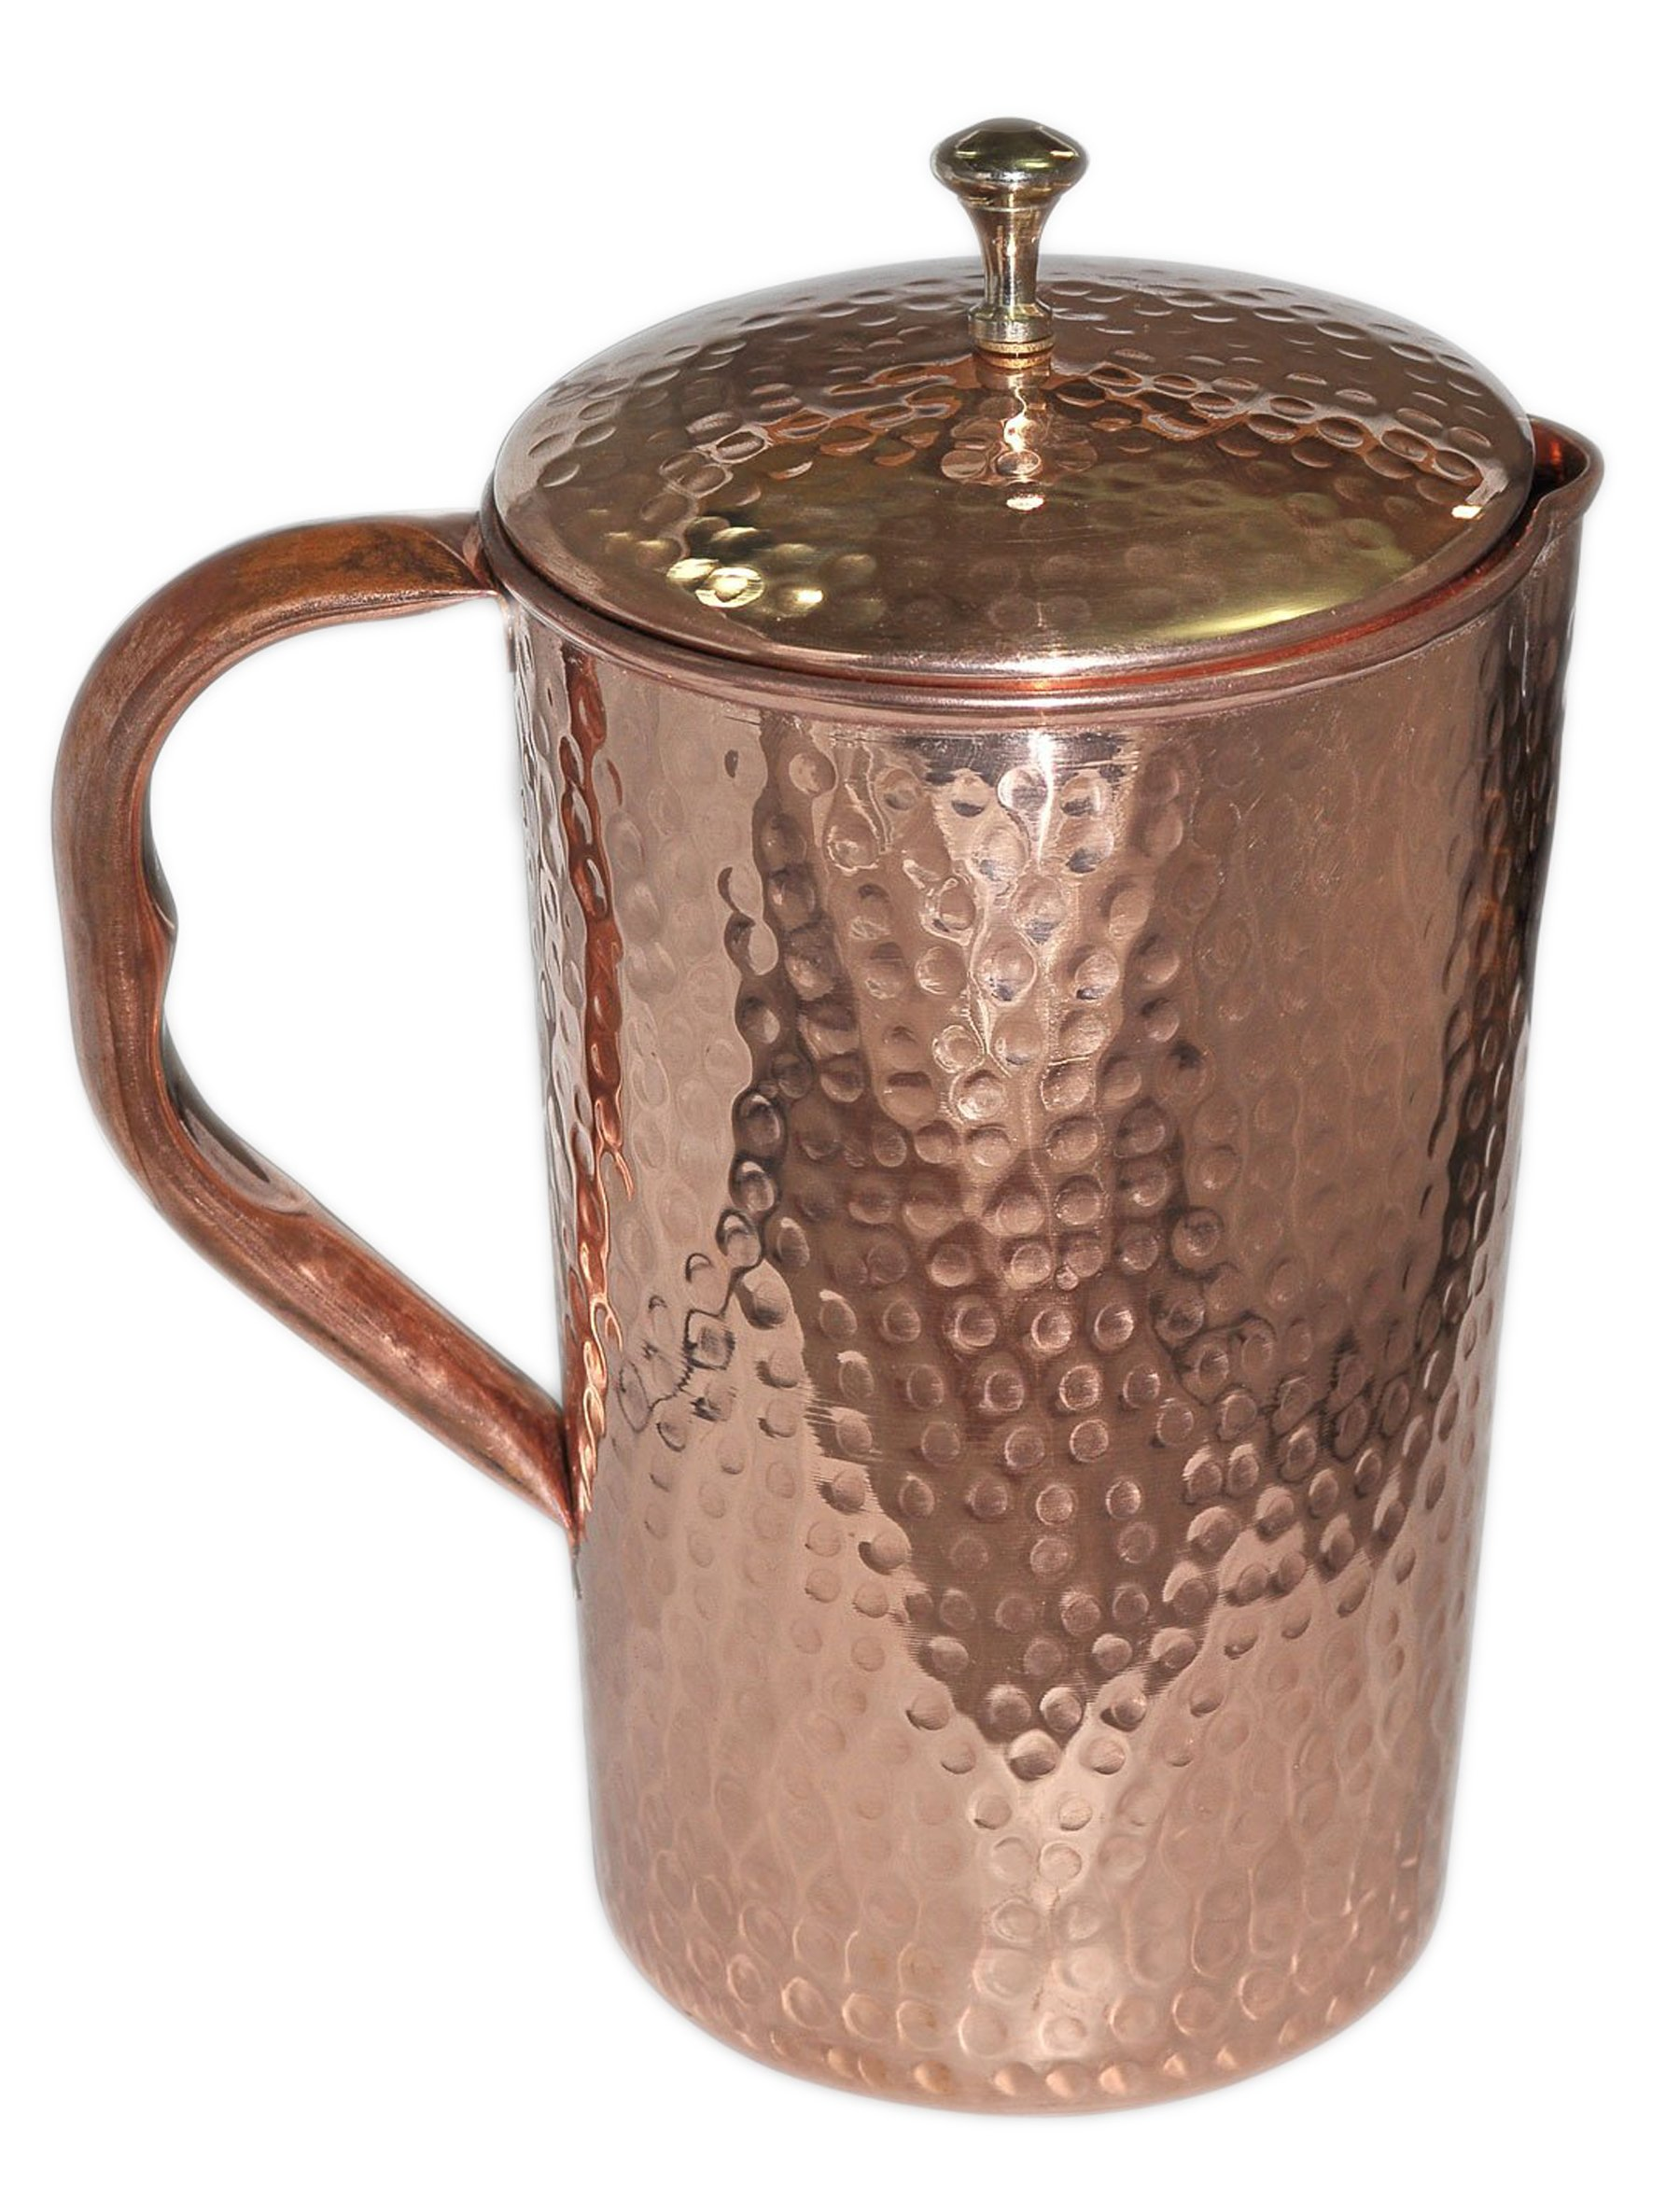 Pure Copper Hammered Water Jug Copper Pitcher for Ayurveda Health Benefit Hammered Finished